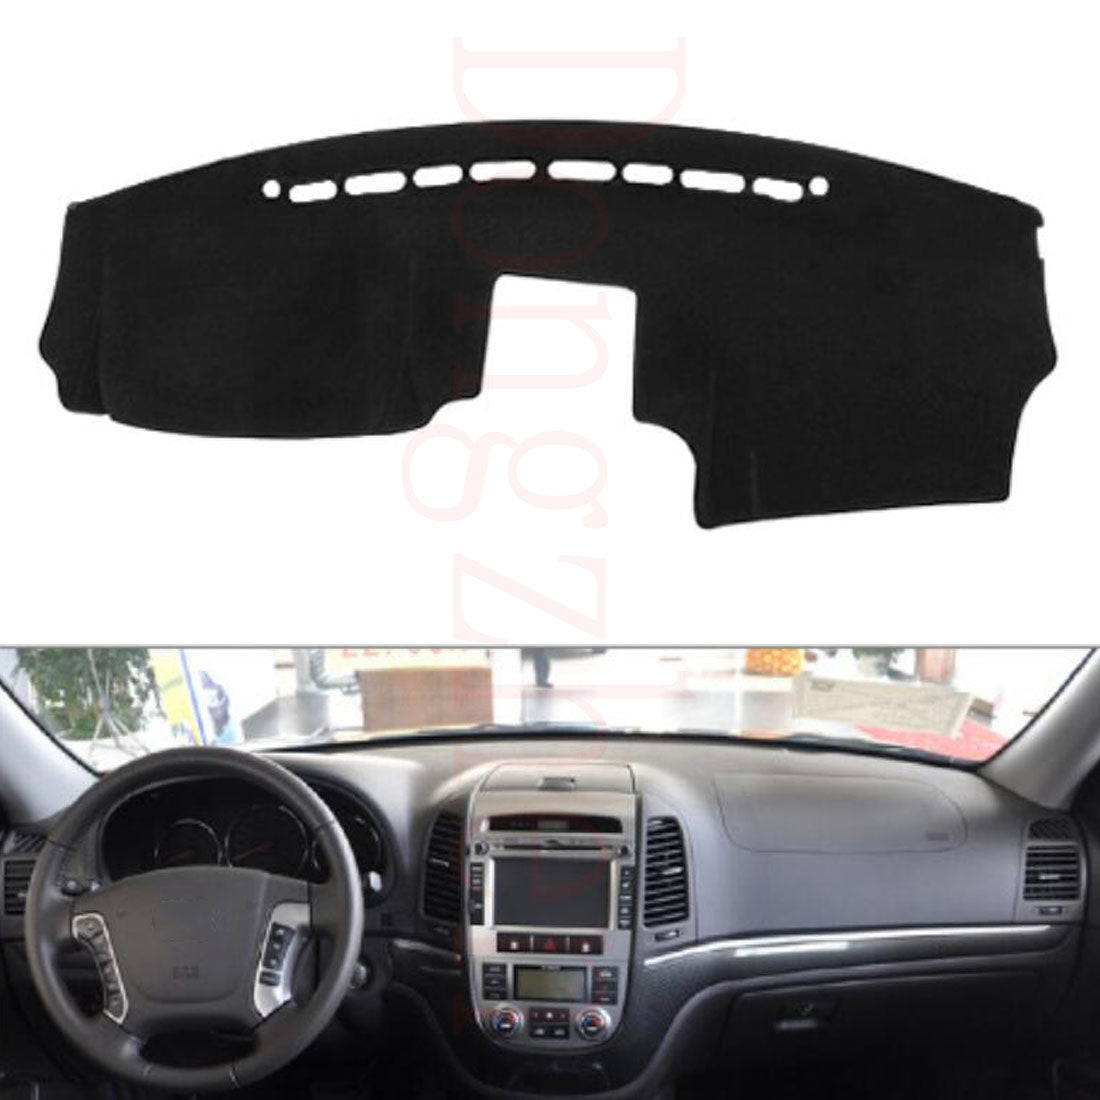 Dashboard Cover For HYUNDAI Santafe 2009 - 2012,  - Any Car Accessories